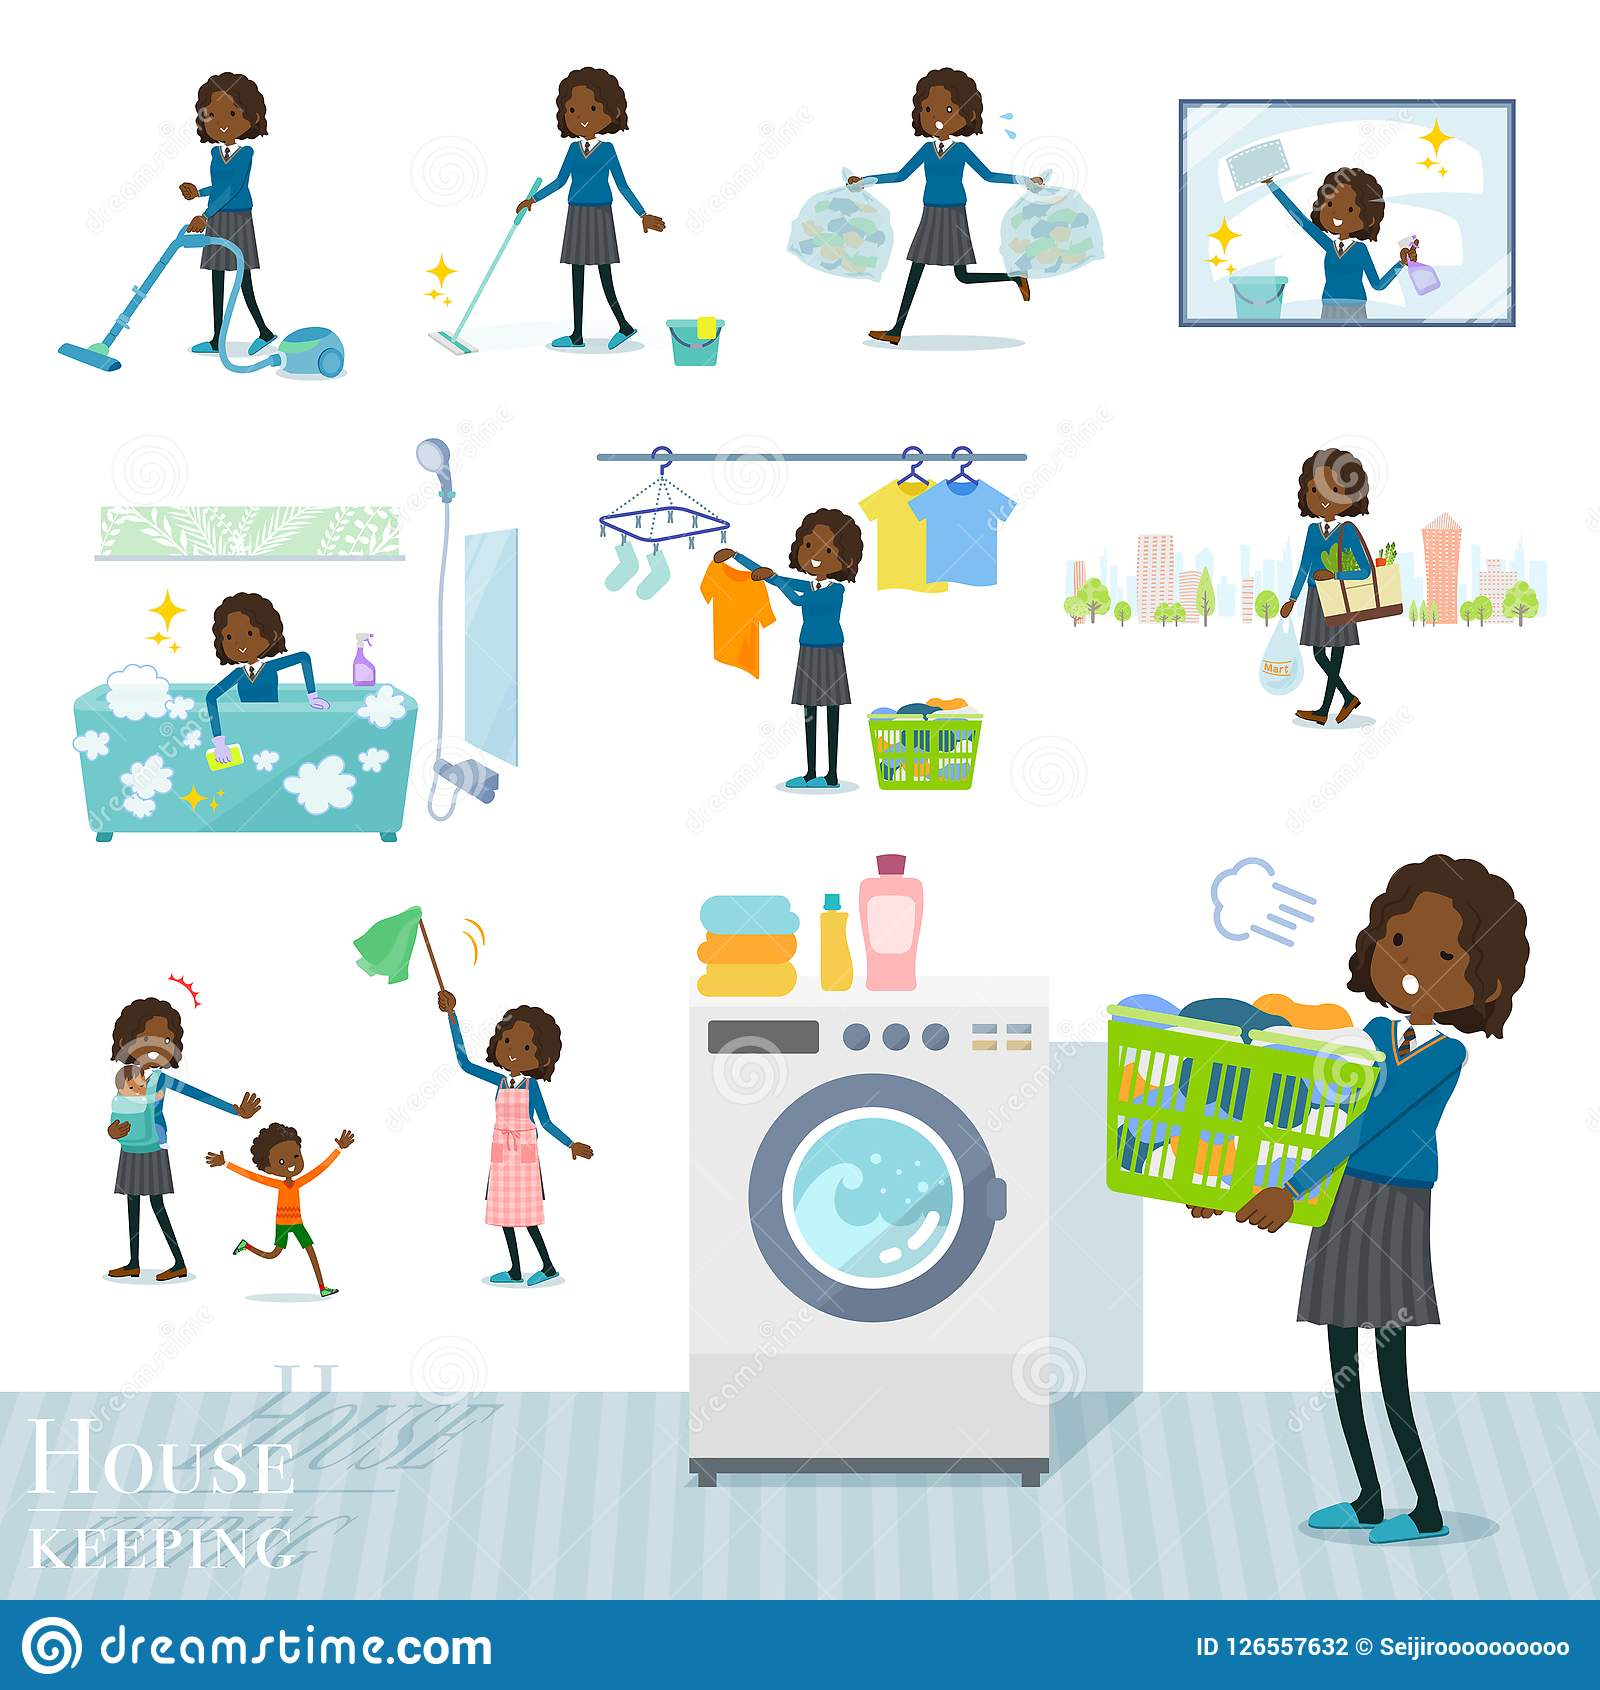 Flat type School girl Black_housekeeping. A set of school girl related to housekeeping such as cleaning and laundry.There are various actions such as child Stock Illustration